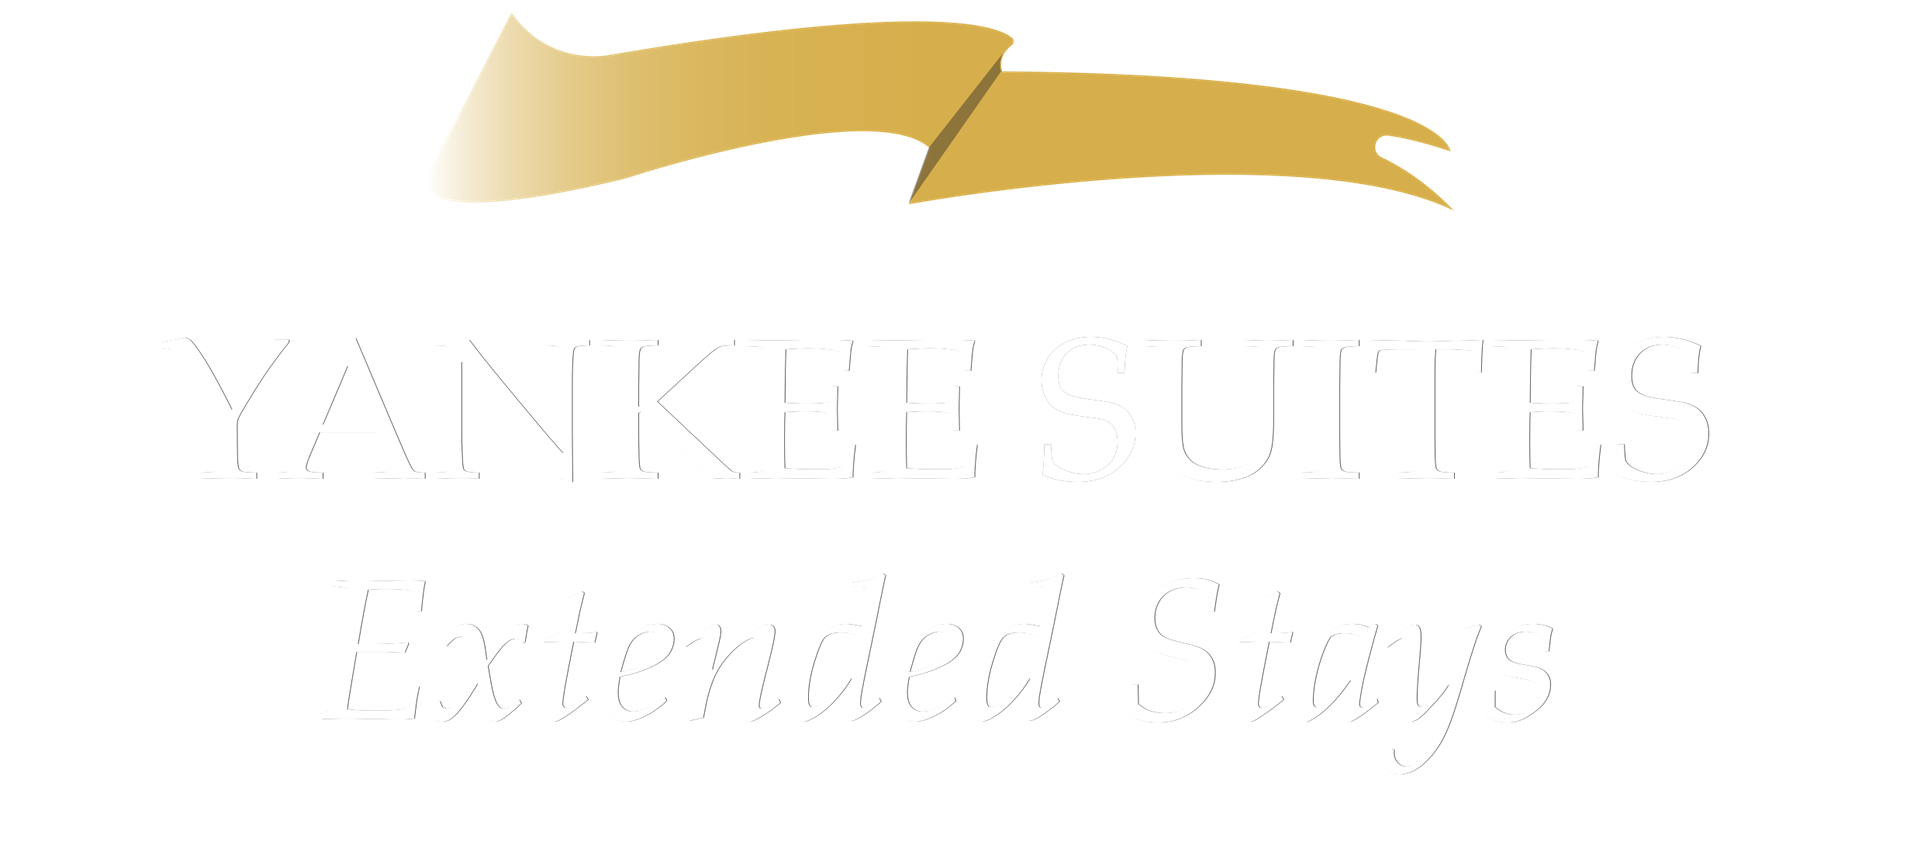 Berkshire Yankee Suites - An Extended Stay Hotel